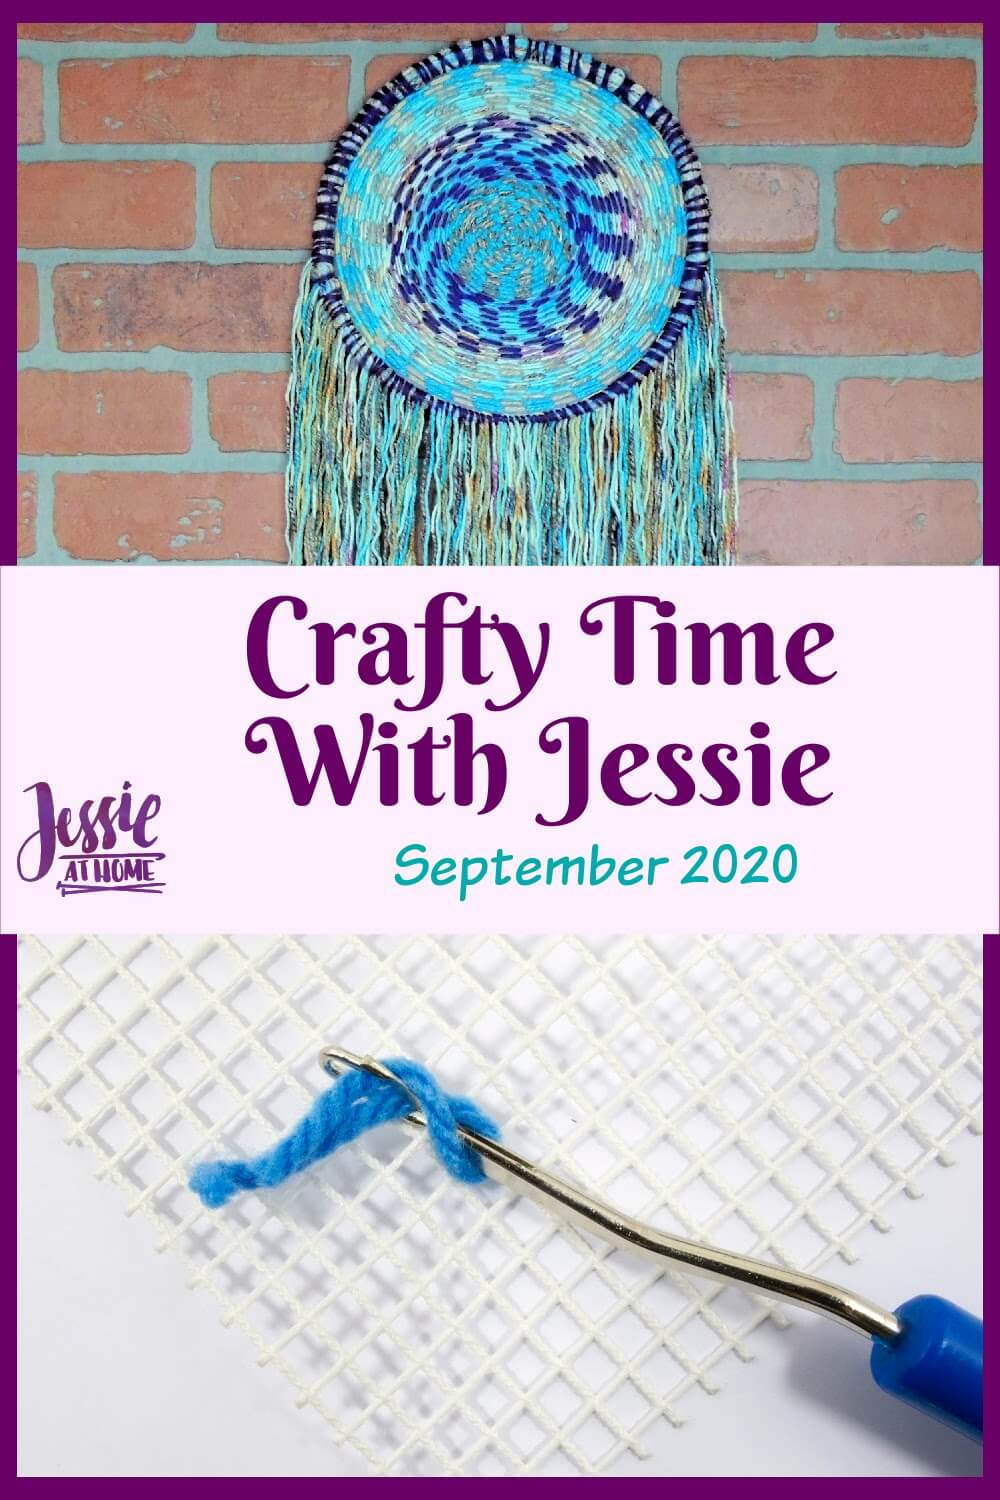 September 2020 Crafty Time with Jessie At Home - Here we go again